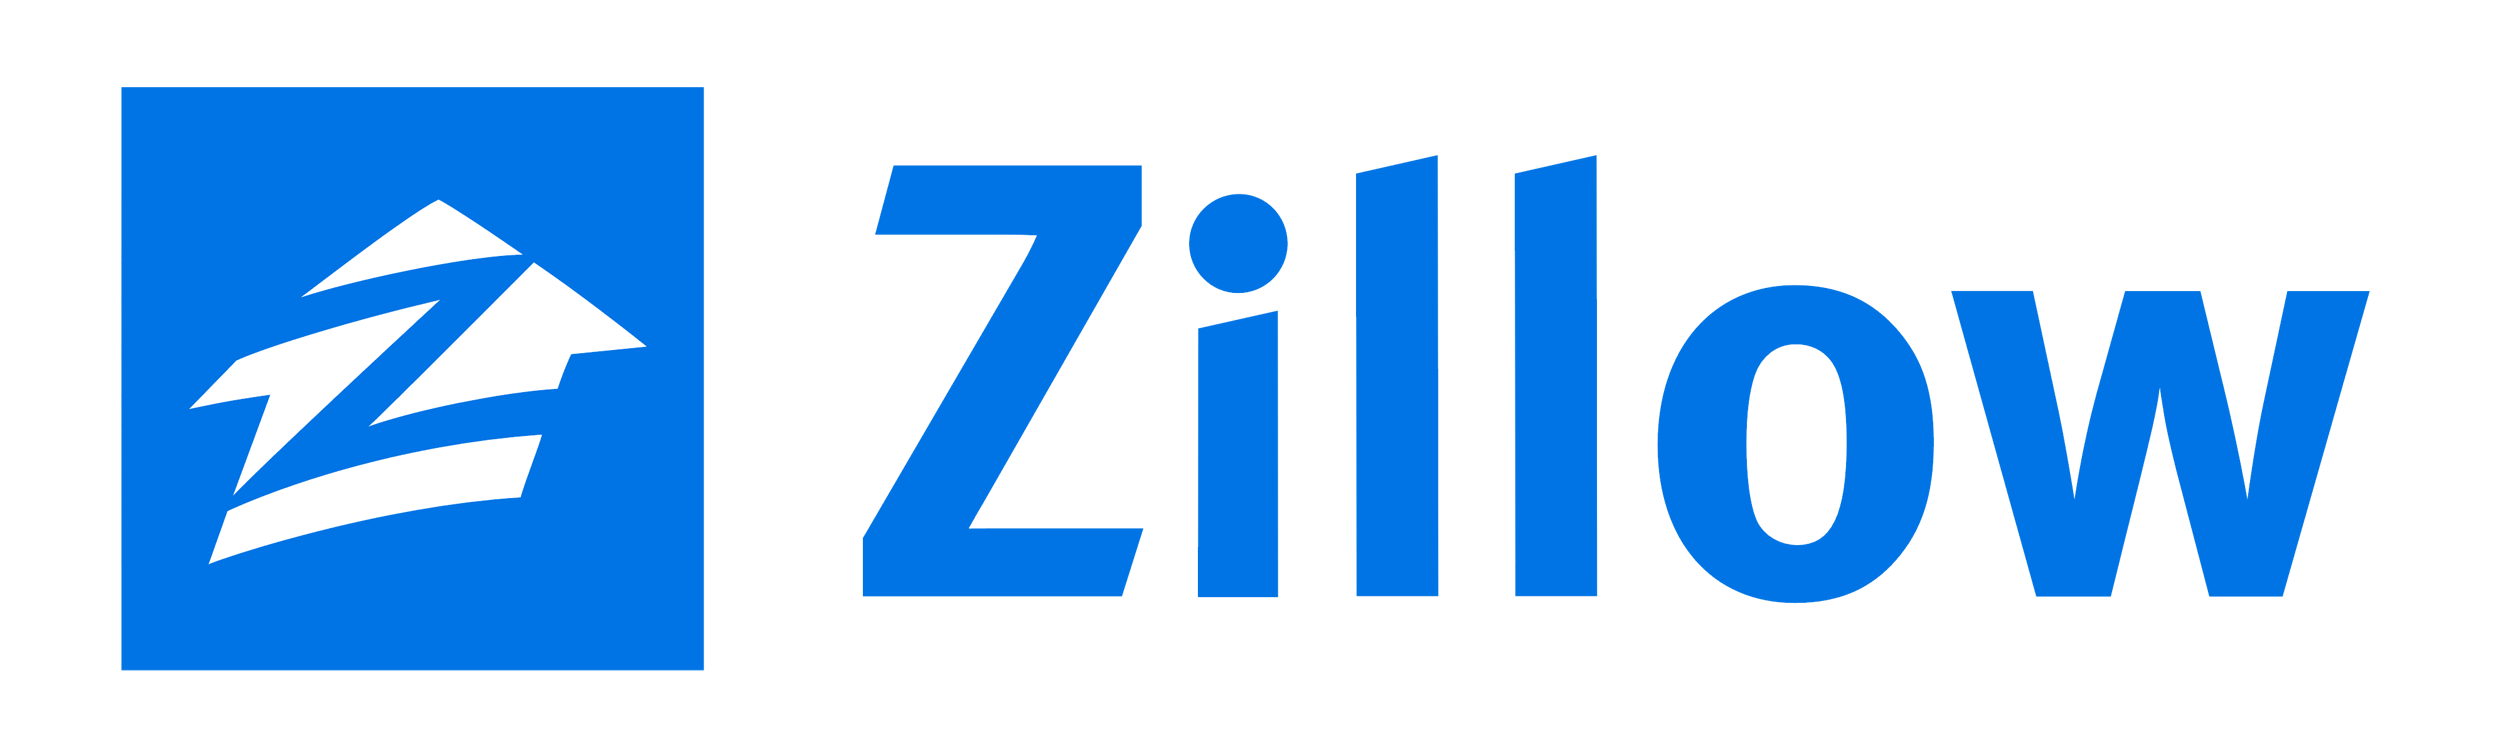 Zillow Logo - Zillow Logo, Zillow Symbol, Meaning, History and Evolution